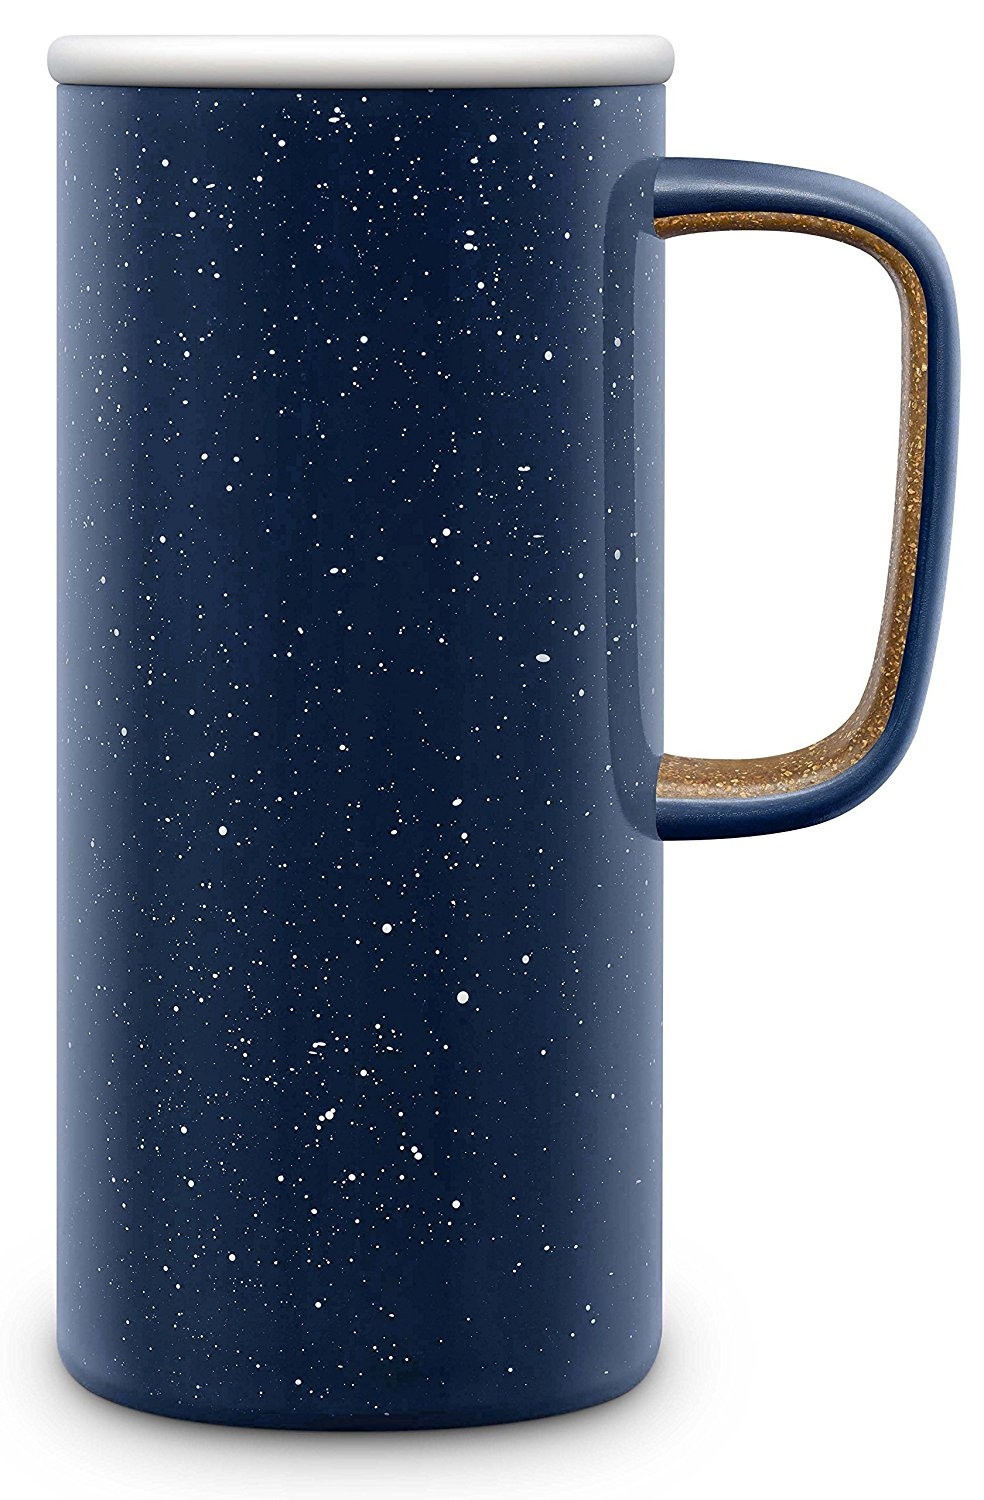 Keep That Morning Coffee or Tea Hot until you get around to drinking it with this adorable enamel insulated travel mug!